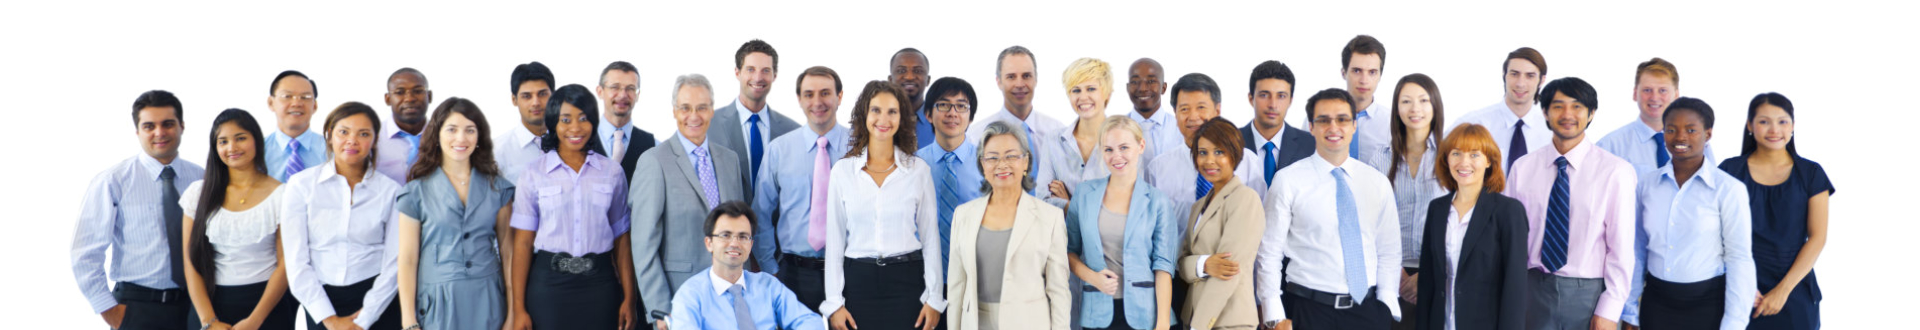 Large Group Business People